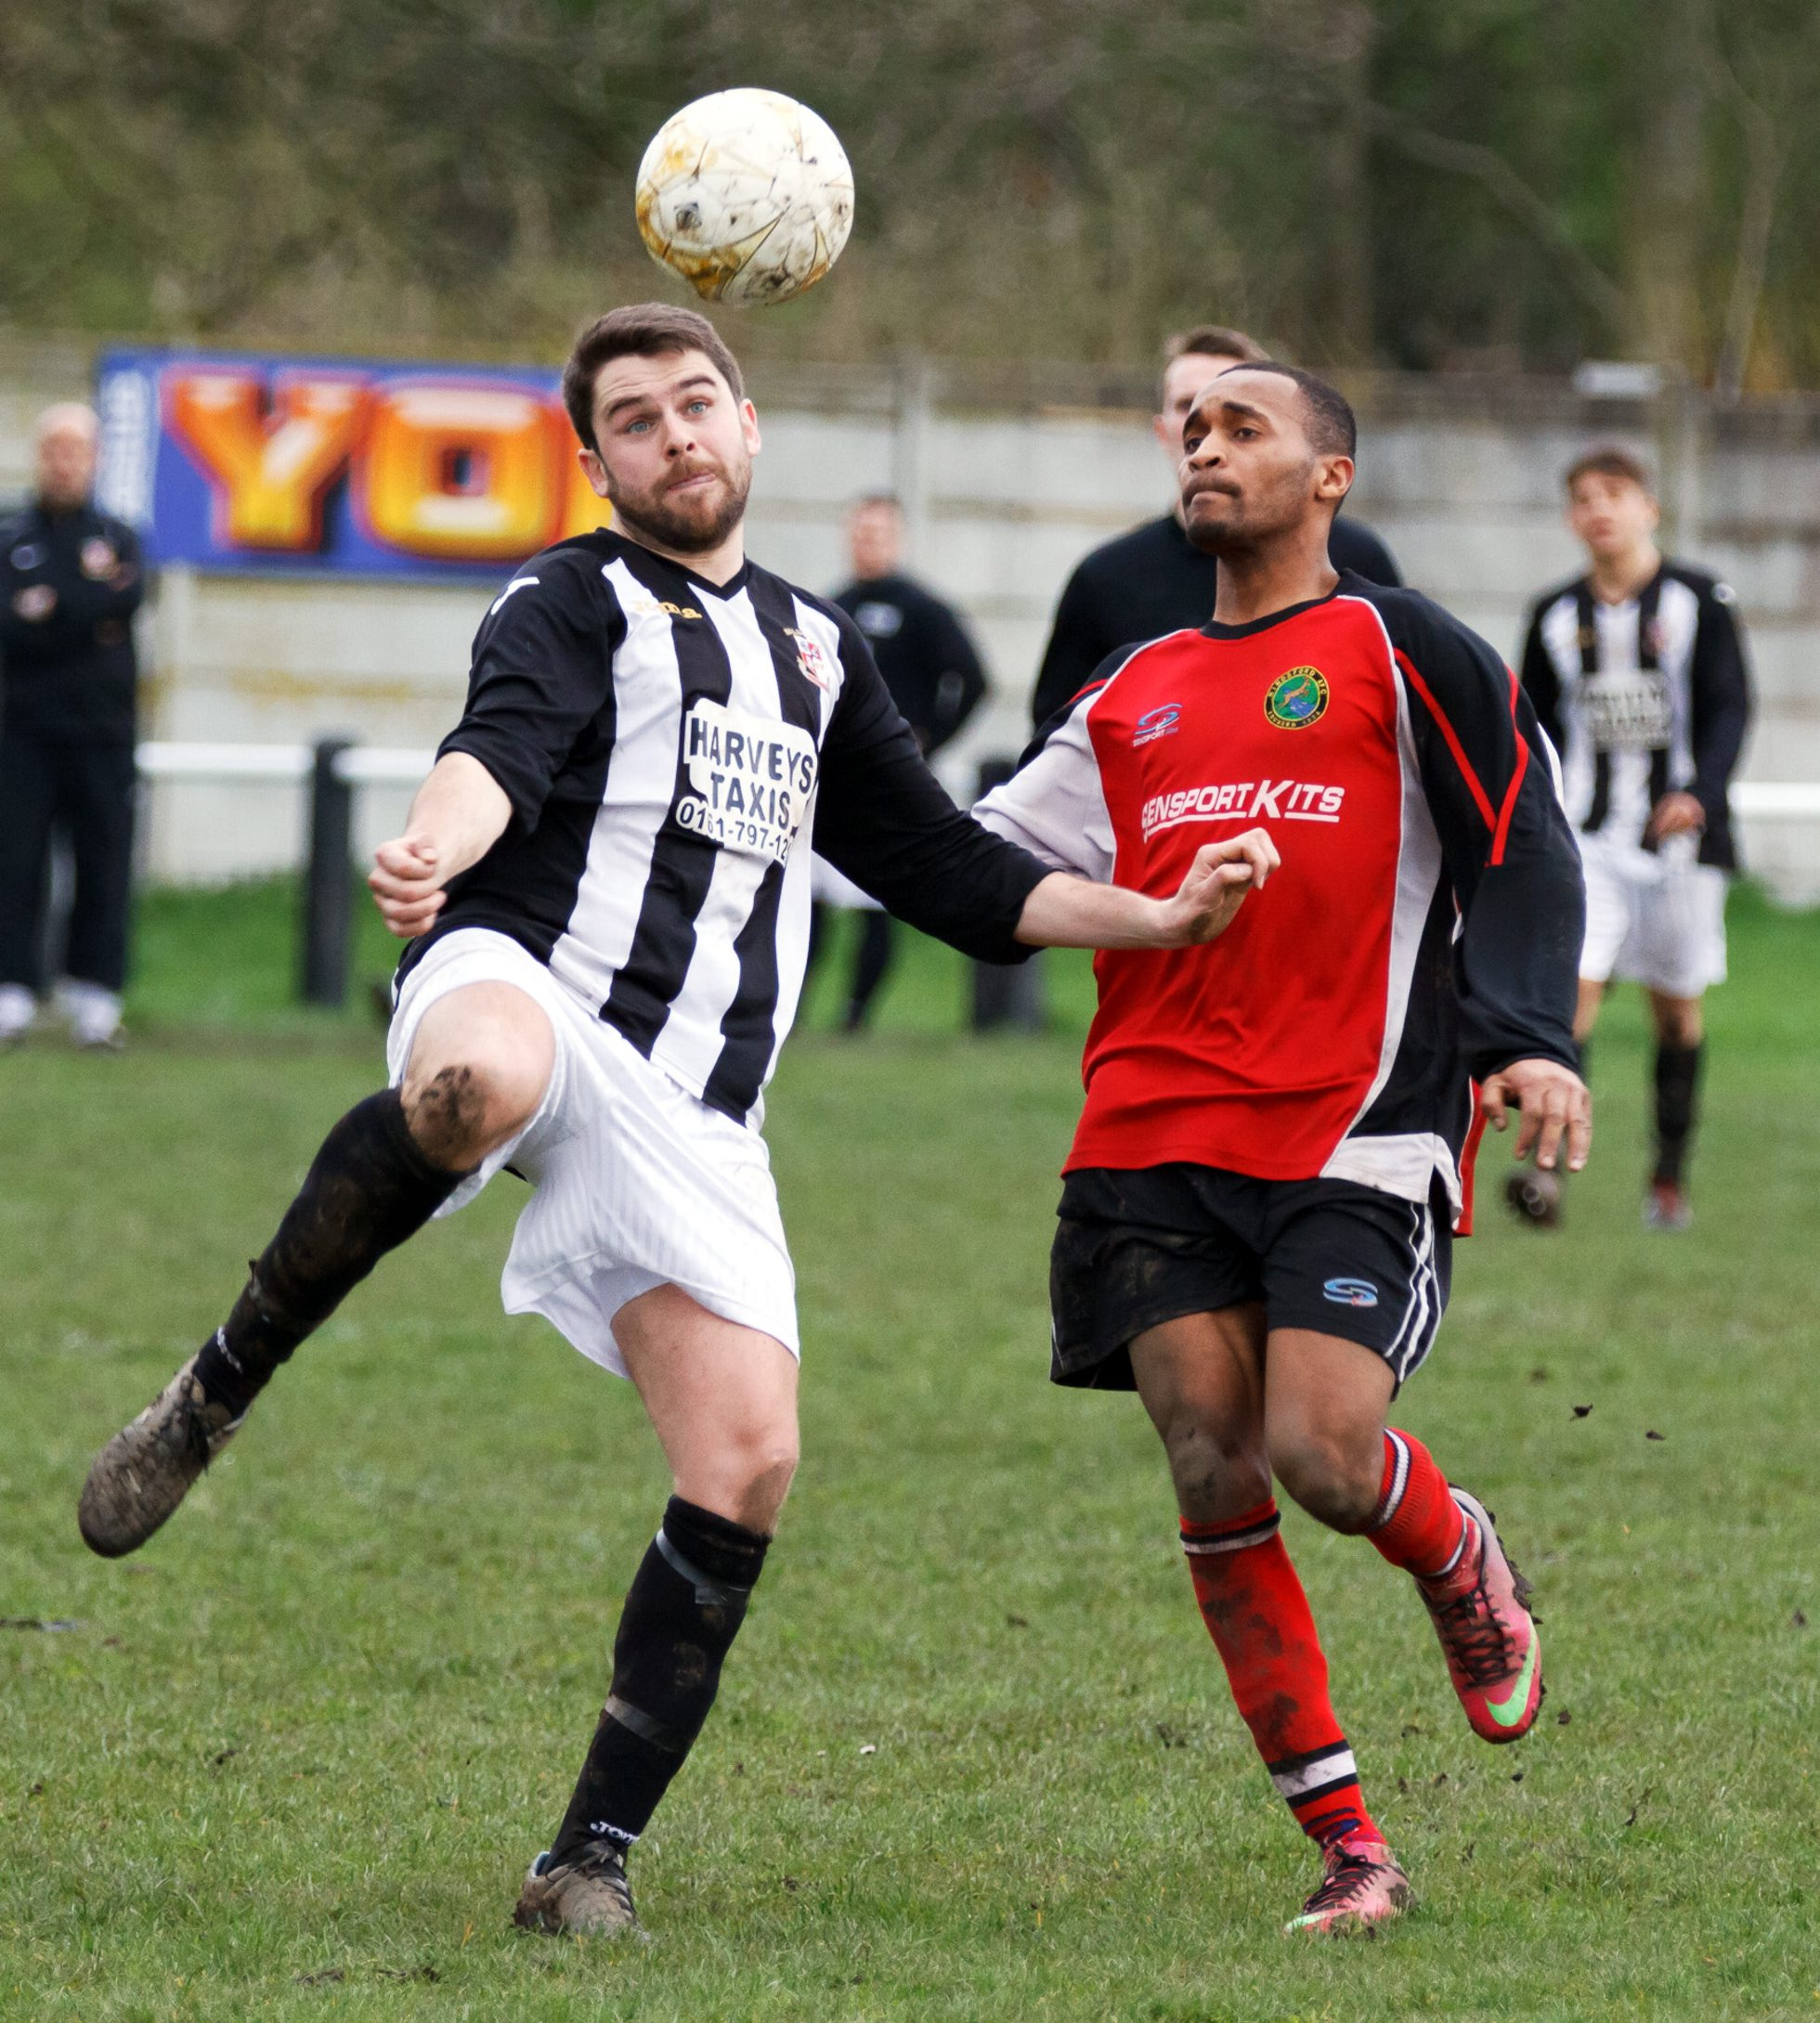 Hindsford's Portuguese striker David Moreno, right, challenges Walshaw Sports' Nicky Barrass. Moreno scored in Hindsford's 2-1 victory